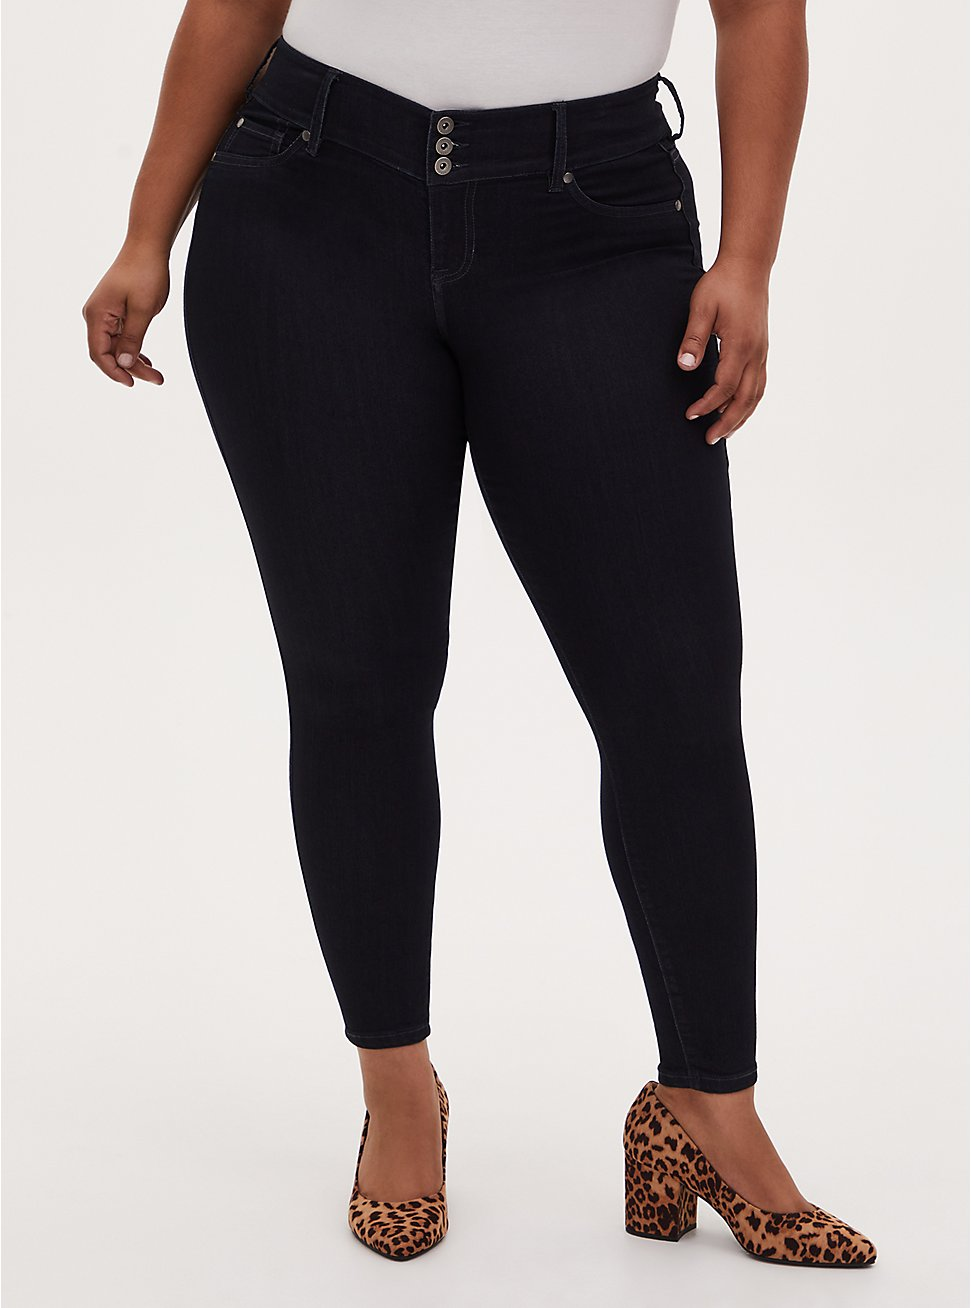 Plus Size Jegging - Super Stretch Dark Wash, RINSE, hi-res